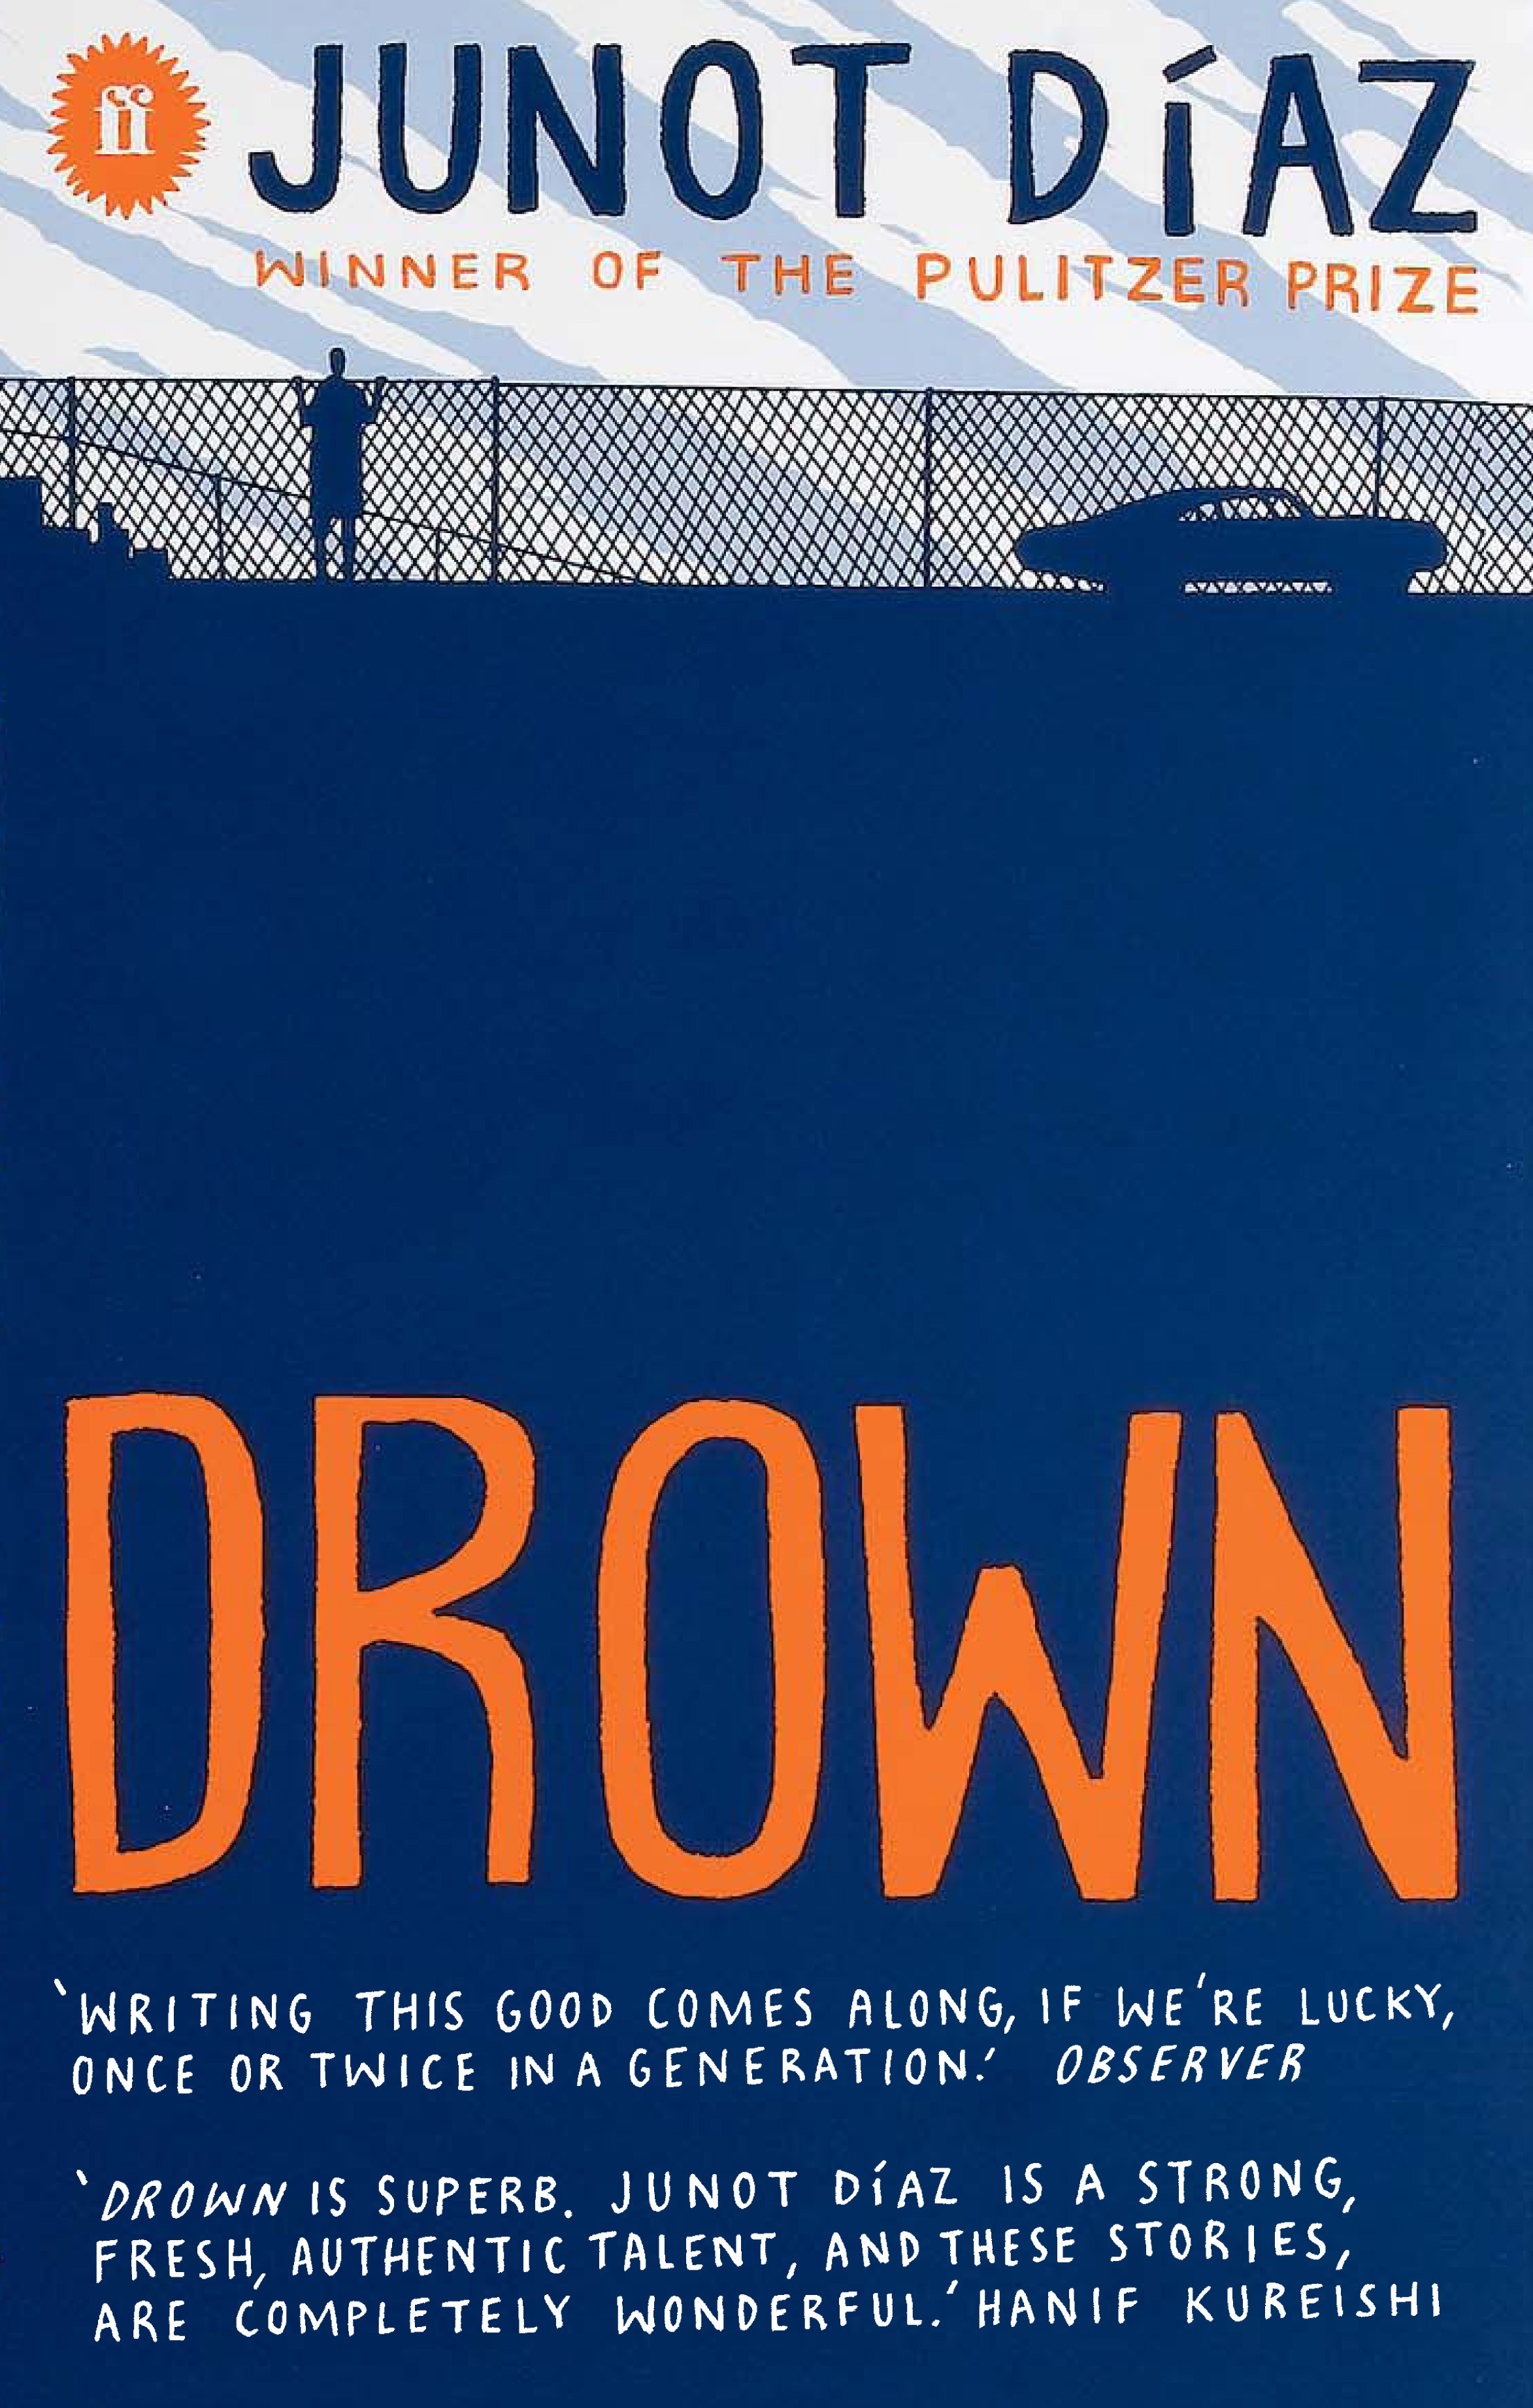 drown junot diaz Drown is the semi-autobiographical, debut short story collection from dominican-american author junot díaz that address the trials and tribulations of dominican immigrants as they attempt to find some semblance of the american dream after immigrating to america.